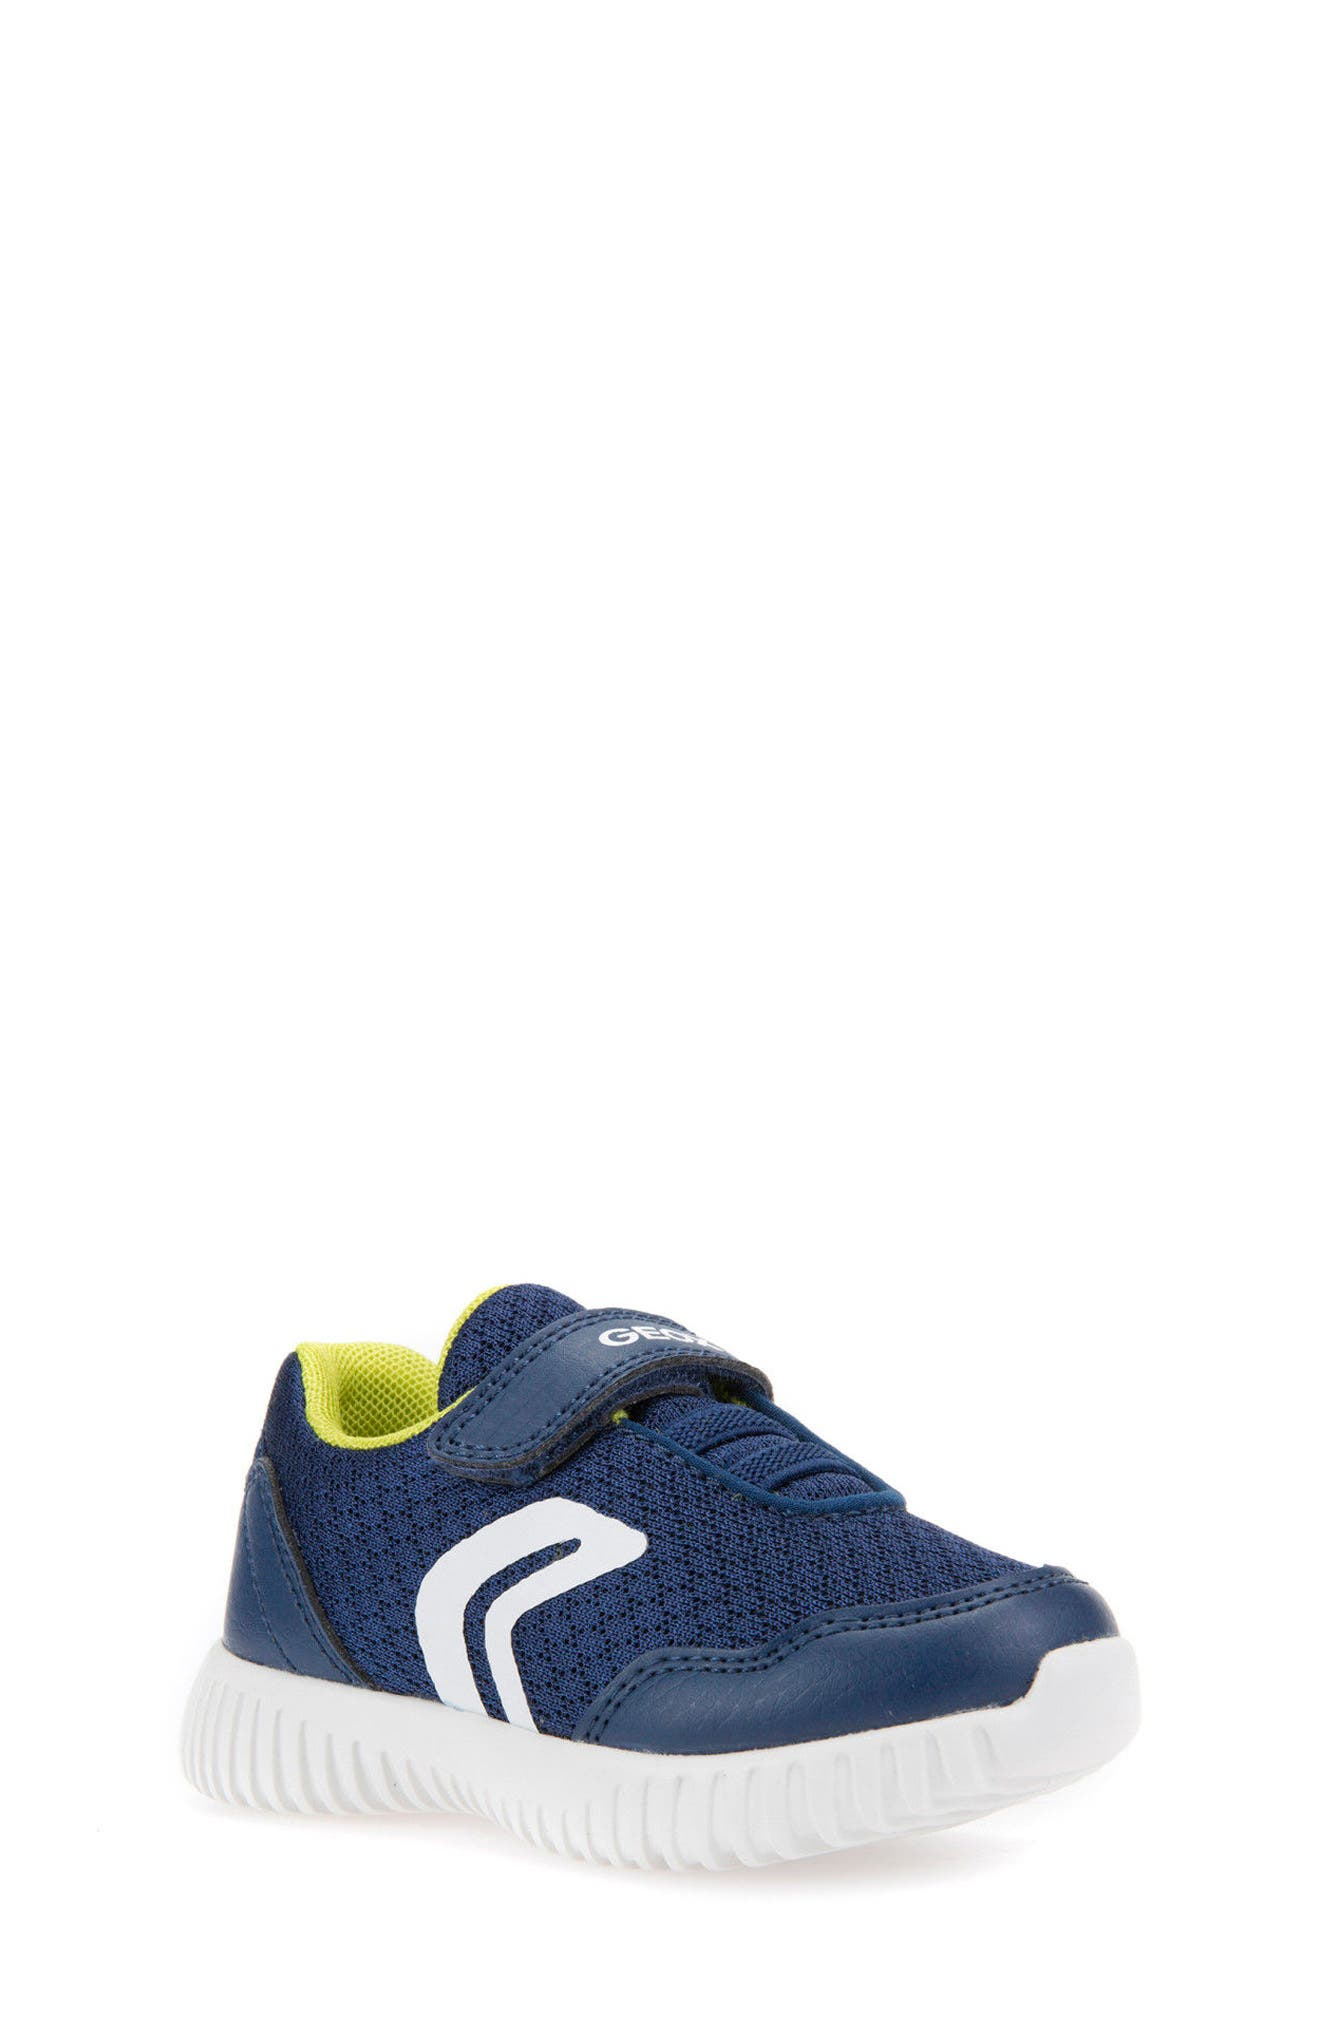 Waviness Sneaker,                             Main thumbnail 1, color,                             NAVY/ LIME